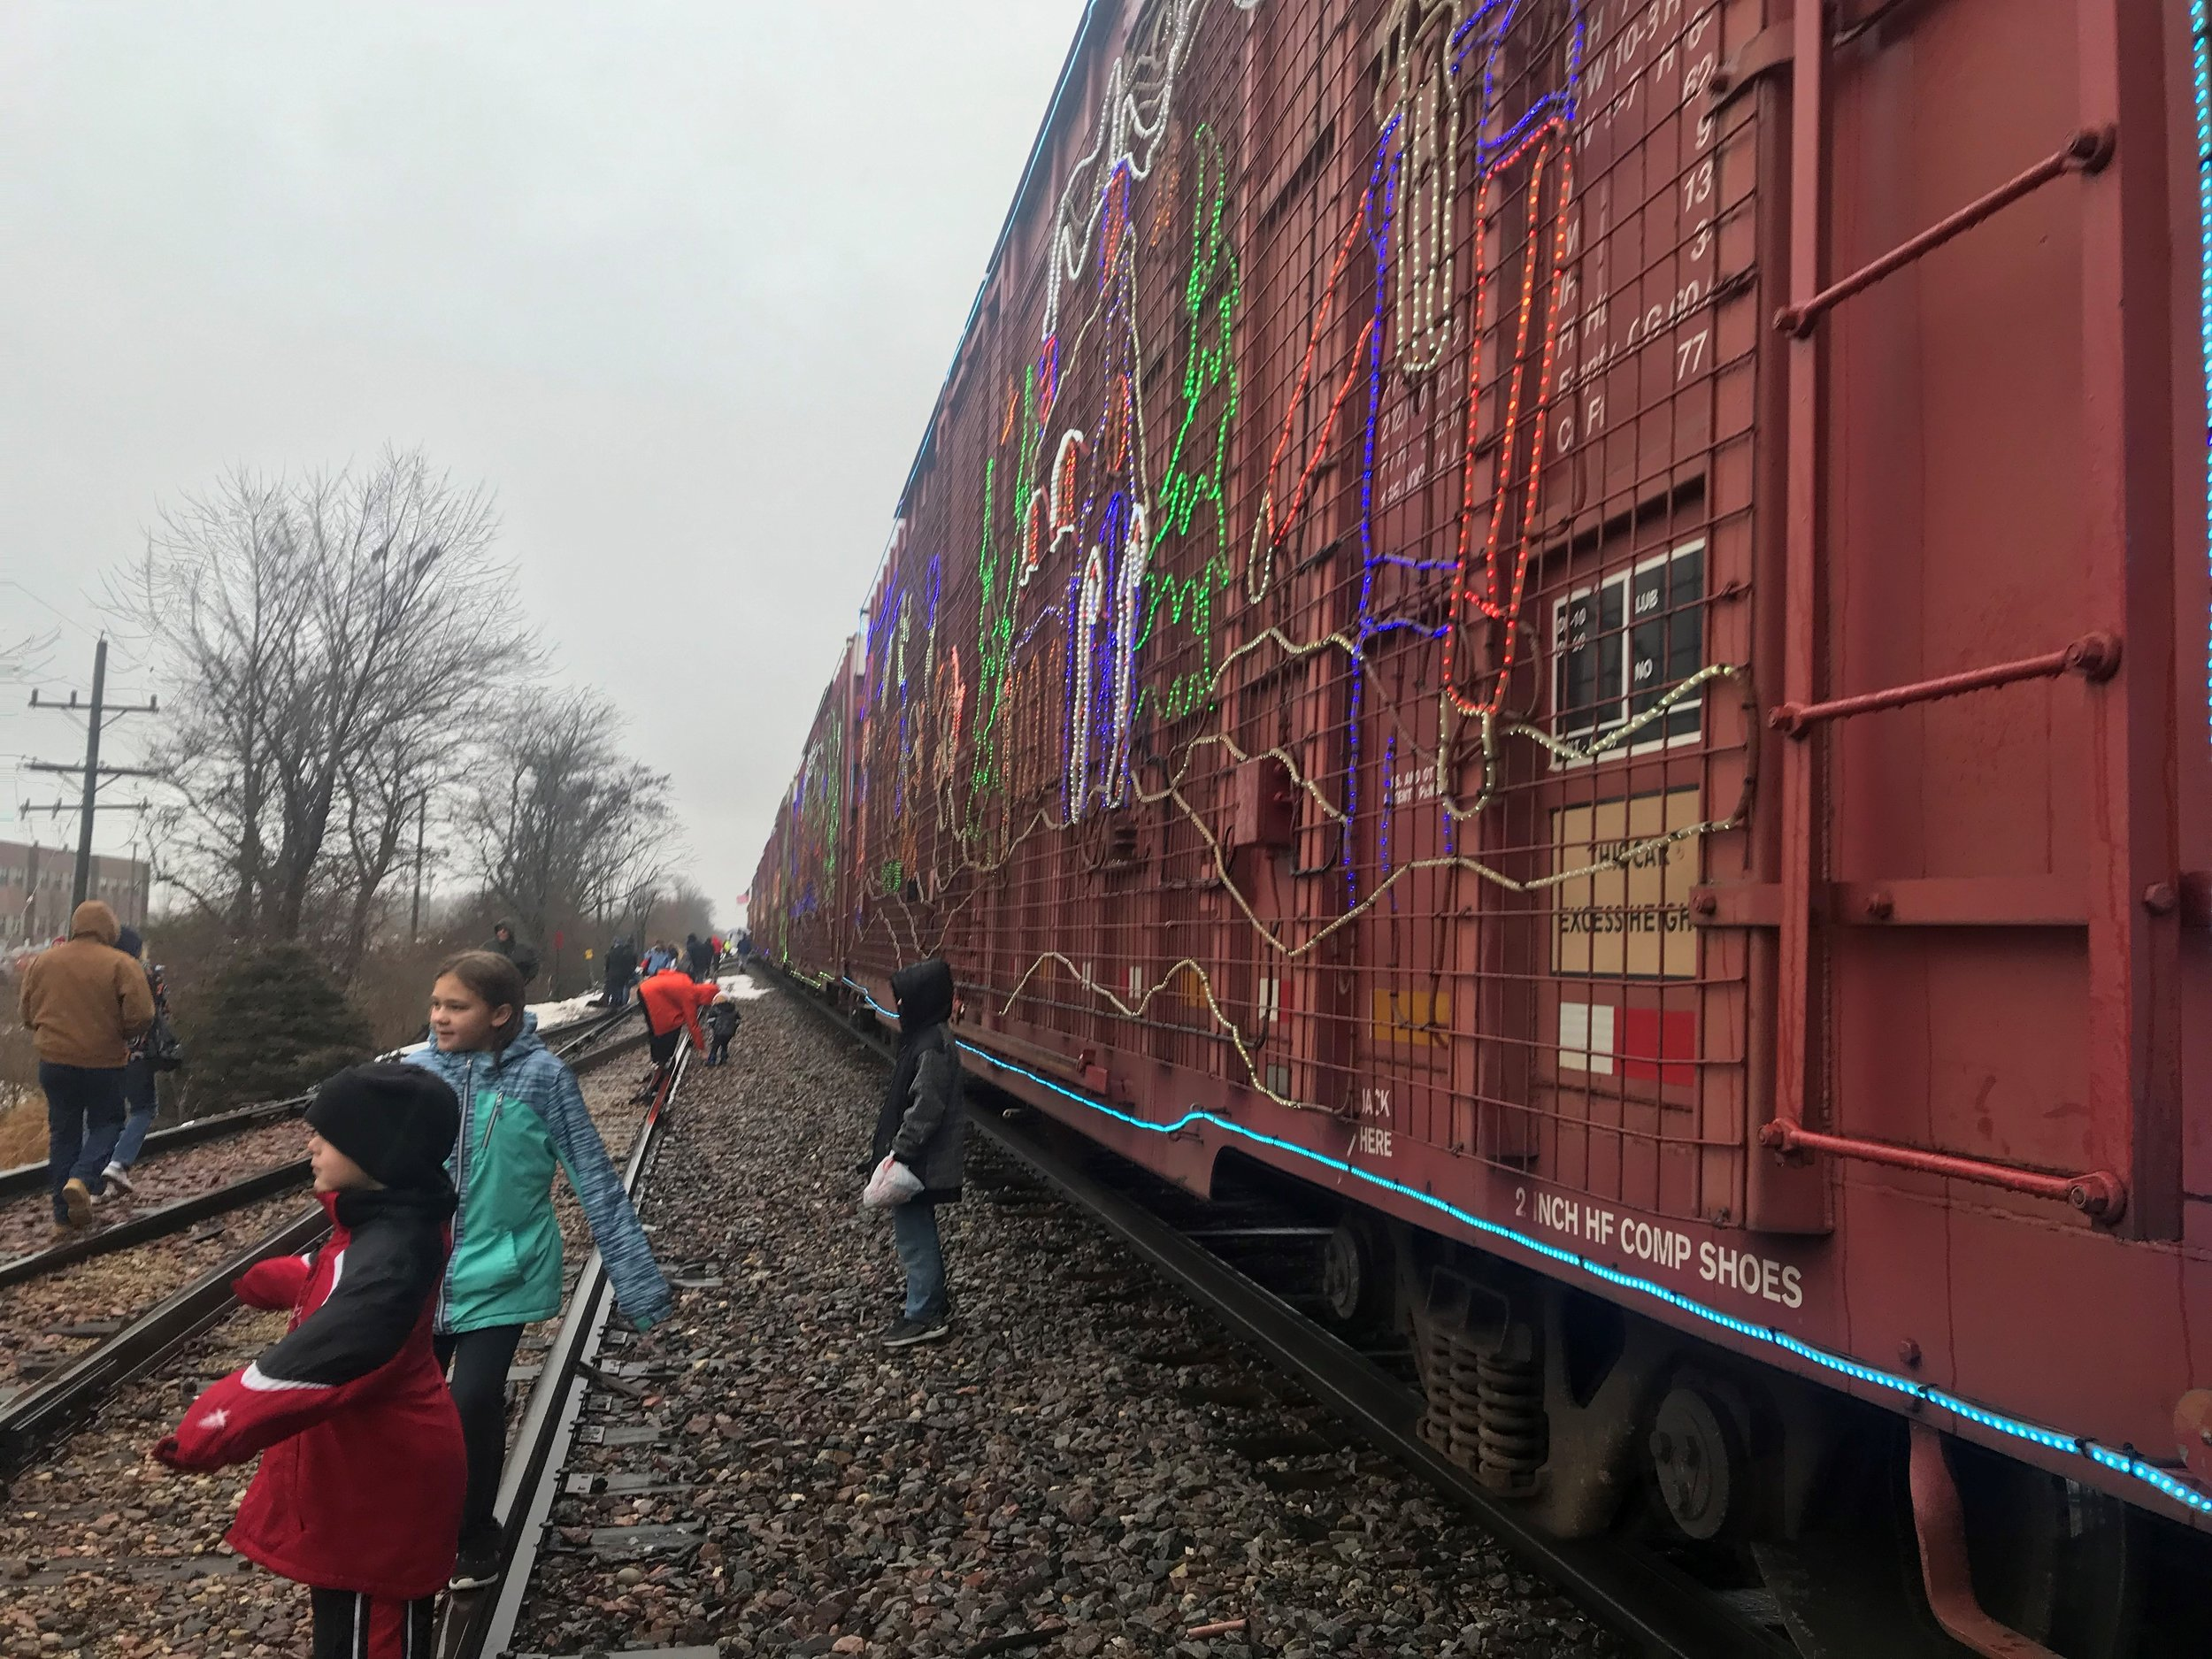 People in Byron got an up close look at the Christmas lights on CP's annual Holiday Train